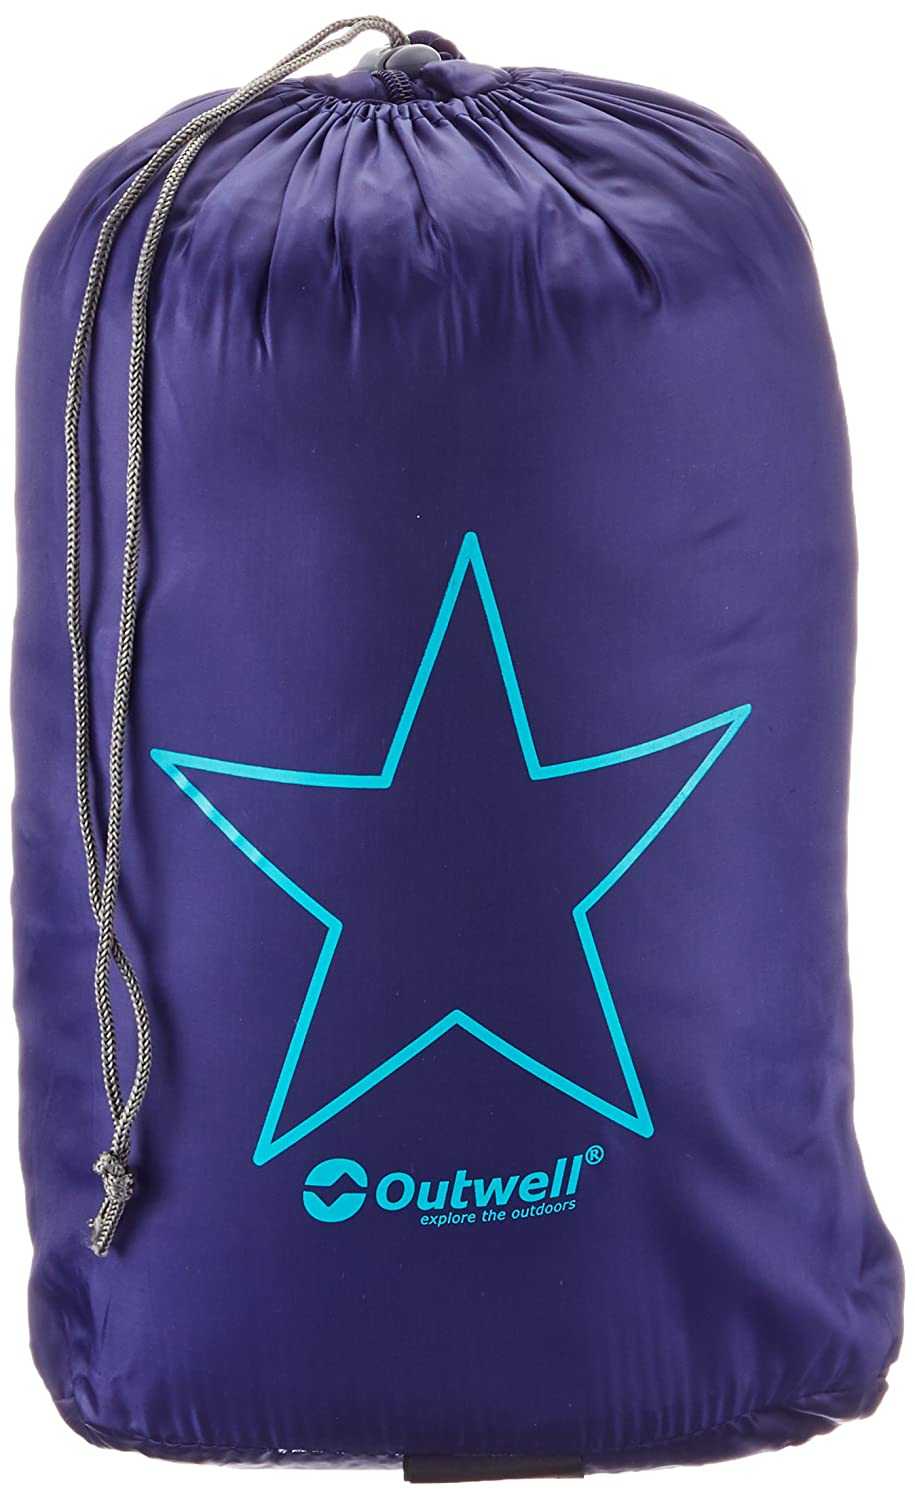 Relags Niños Outwell Cave Kids Saco de Dormir, Infantil, Outwell Schlafsack Cave Kids, Azul Marino, Talla única: Amazon.es: Deportes y aire libre